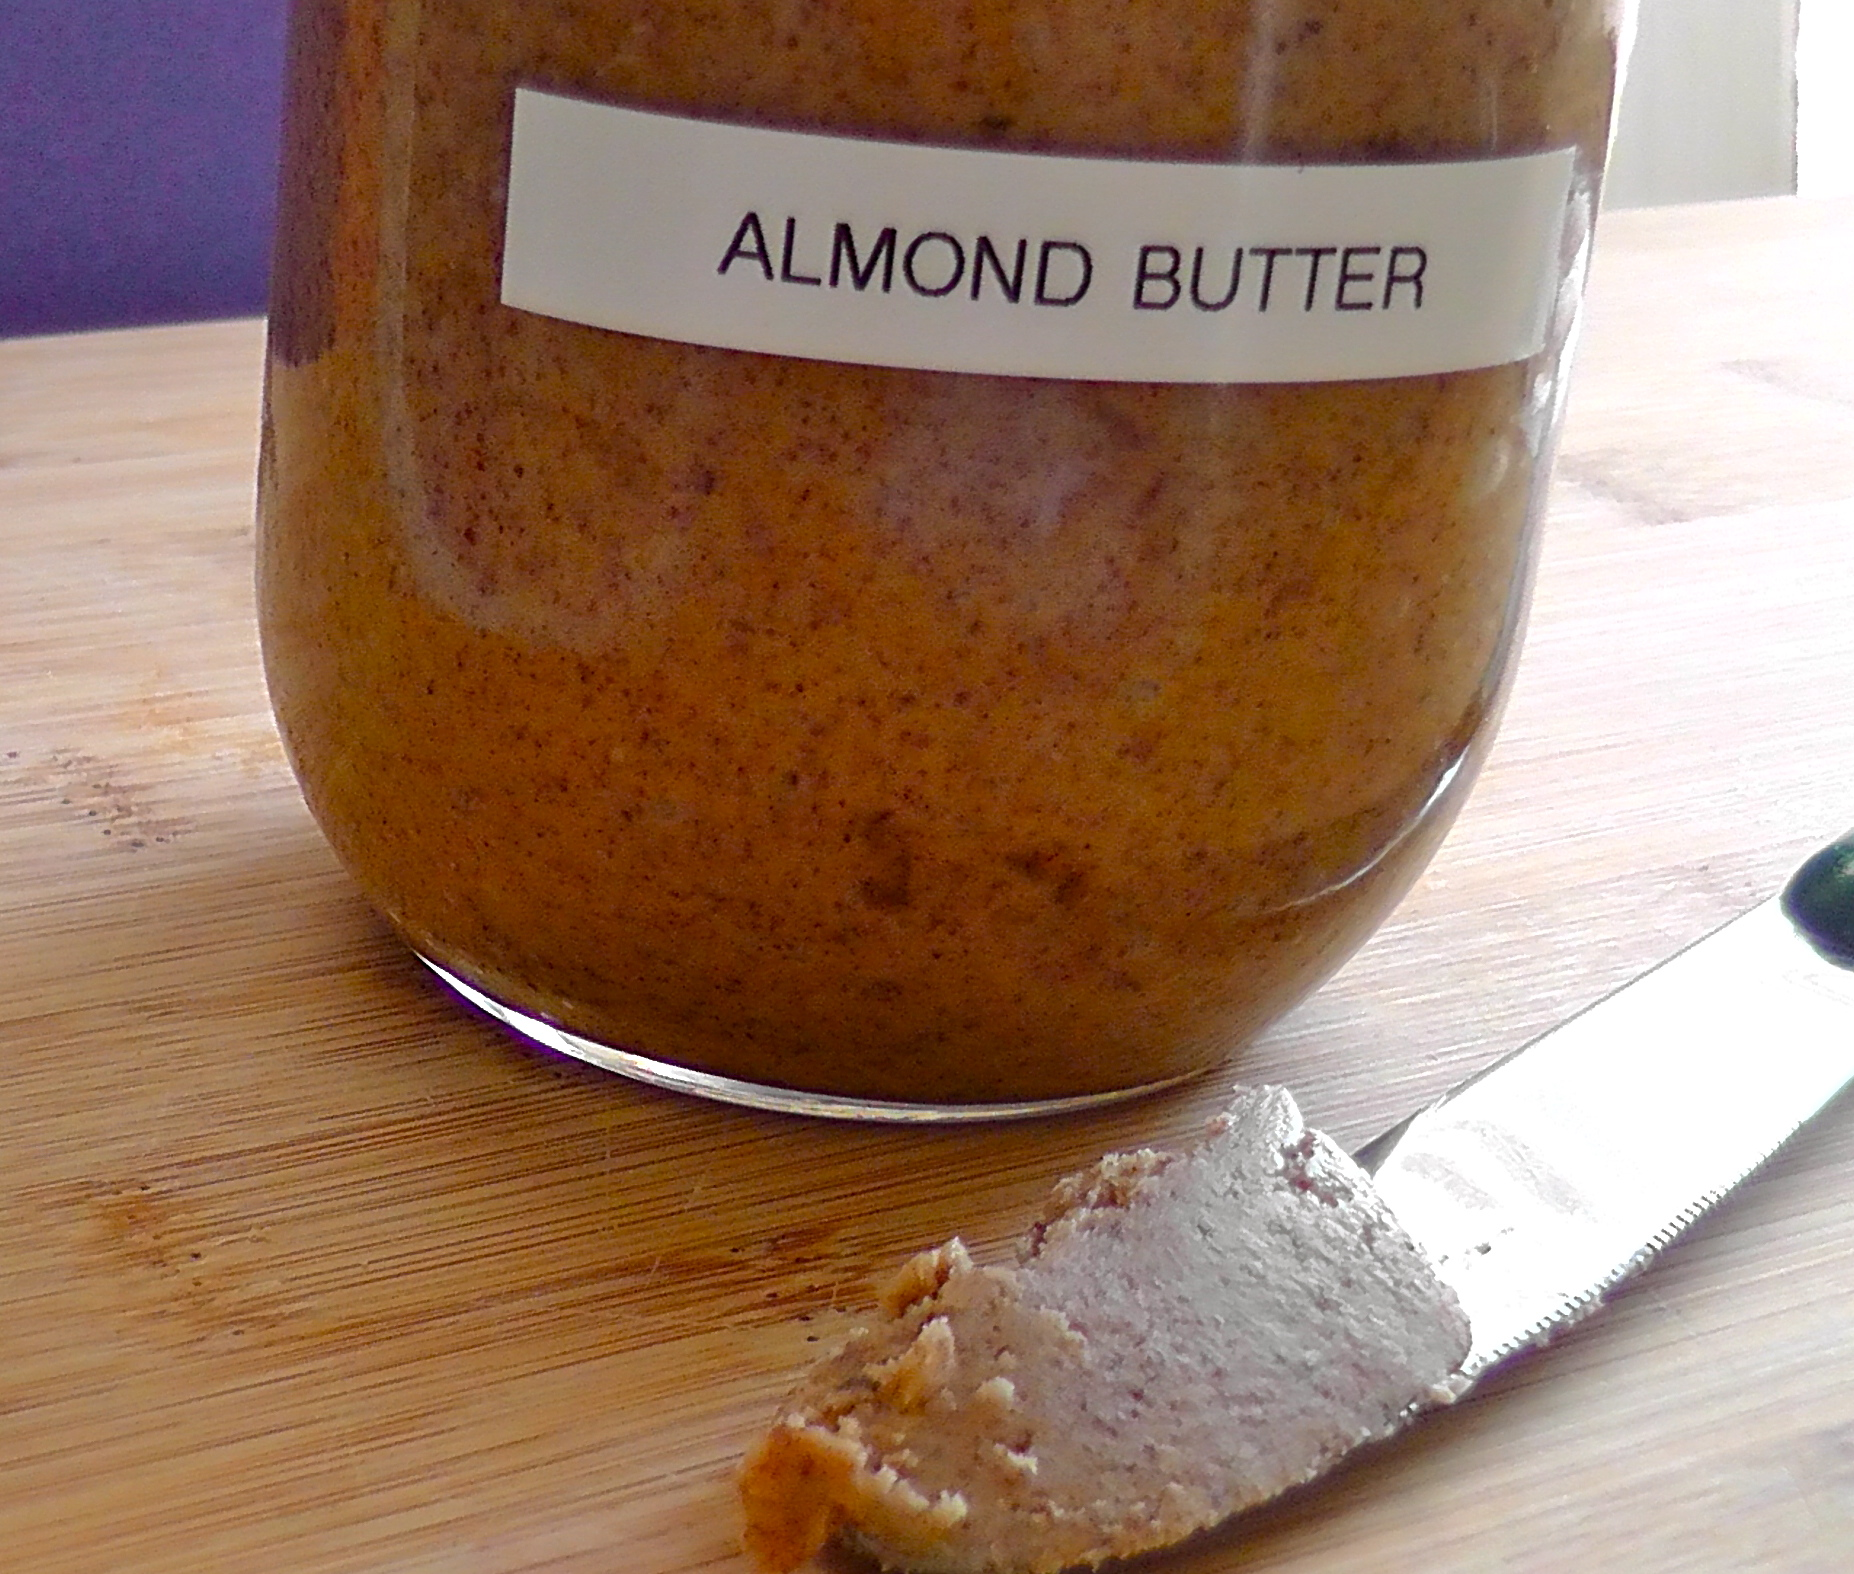 Now you have fresh homemade almond butter so make this recipe……..